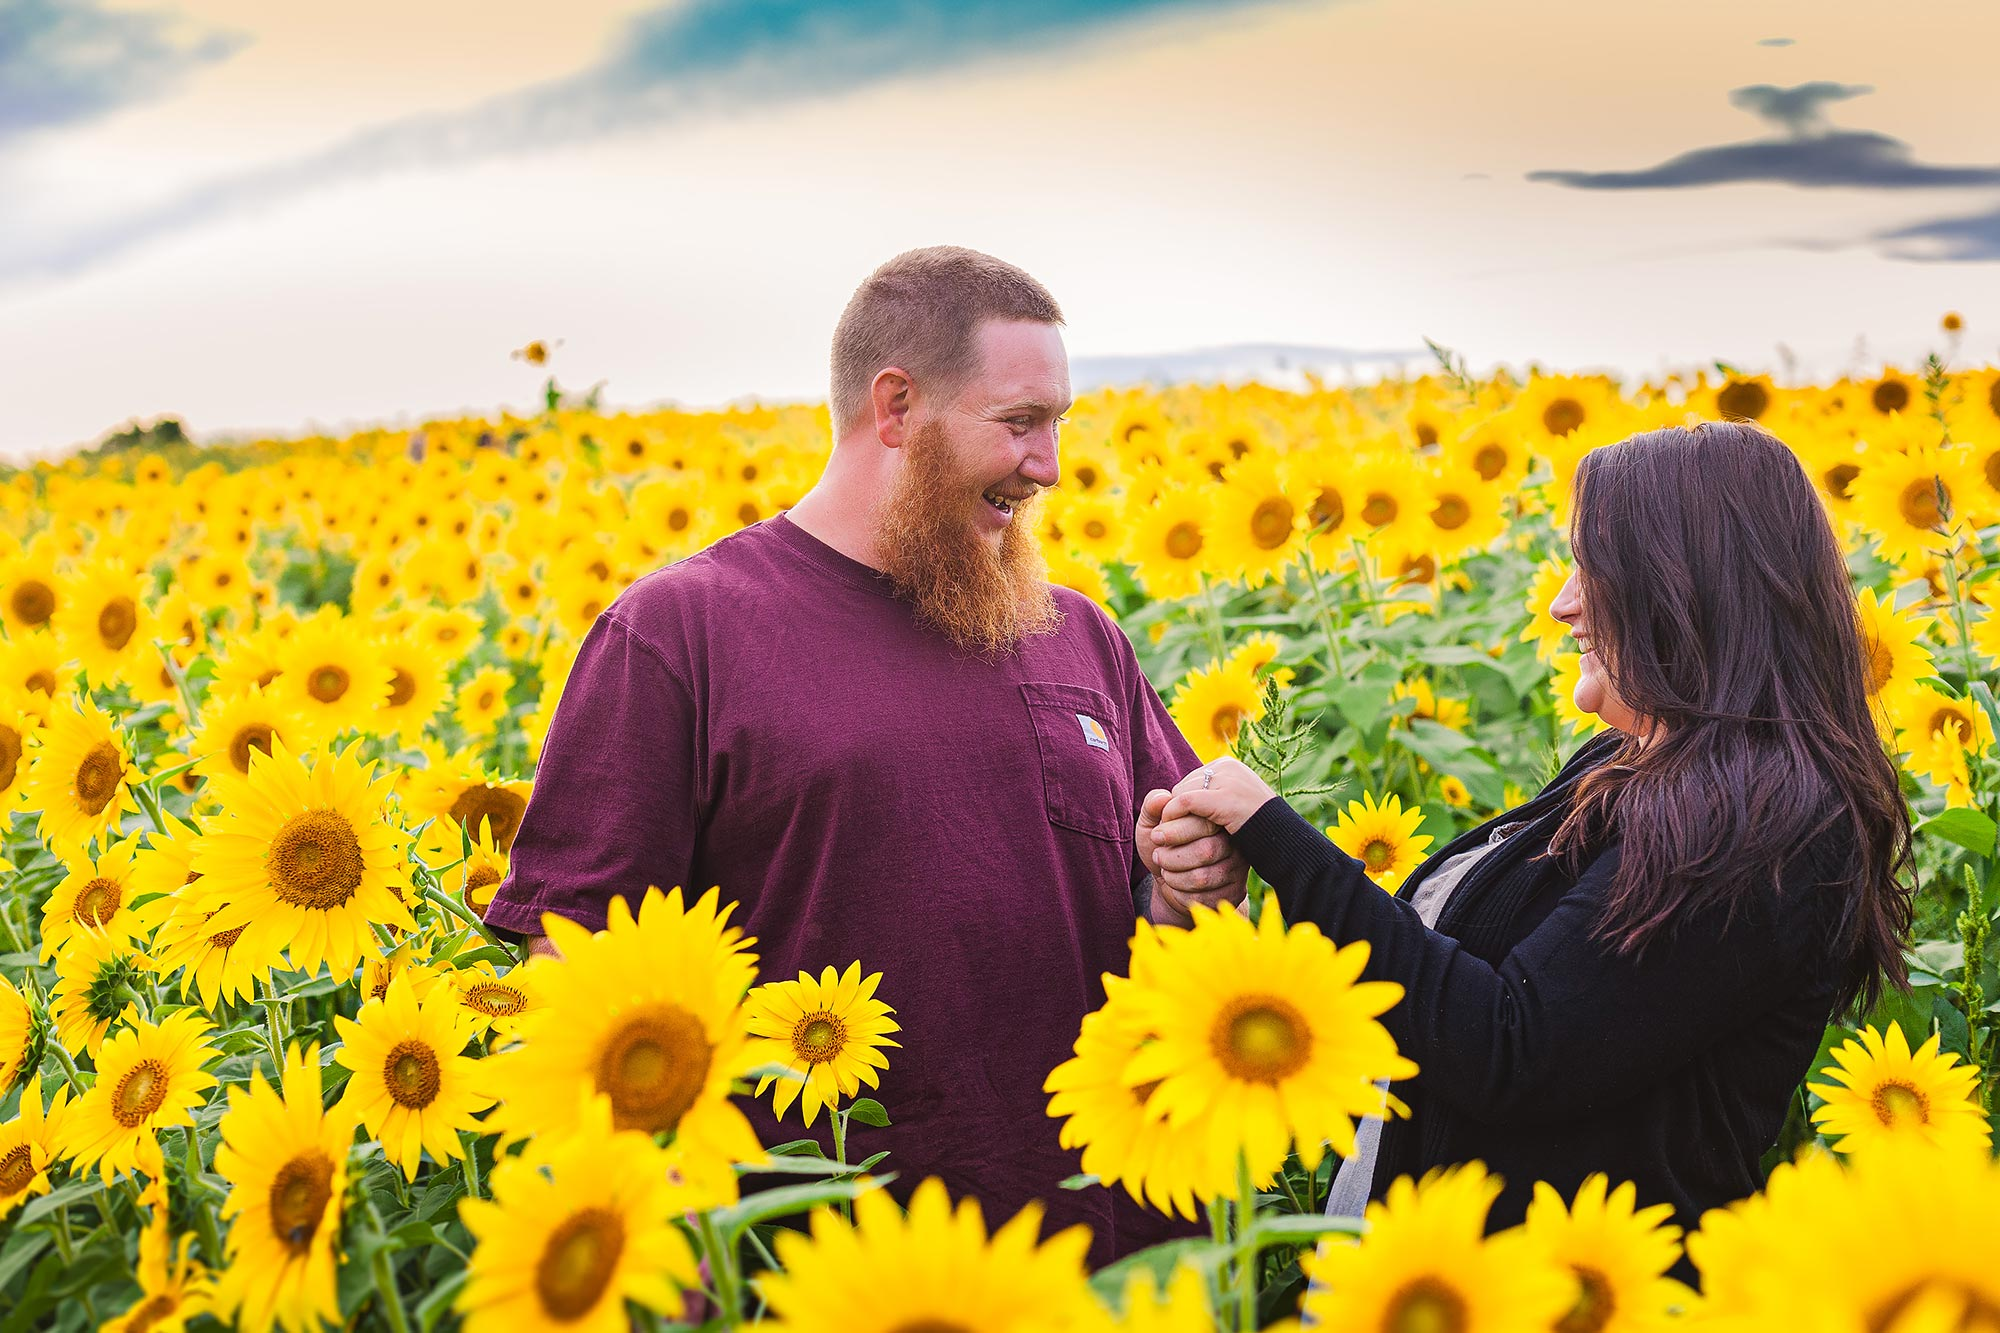 Colby Farm Sunflowers Portrait Photographer  | Stephen Grant Photography